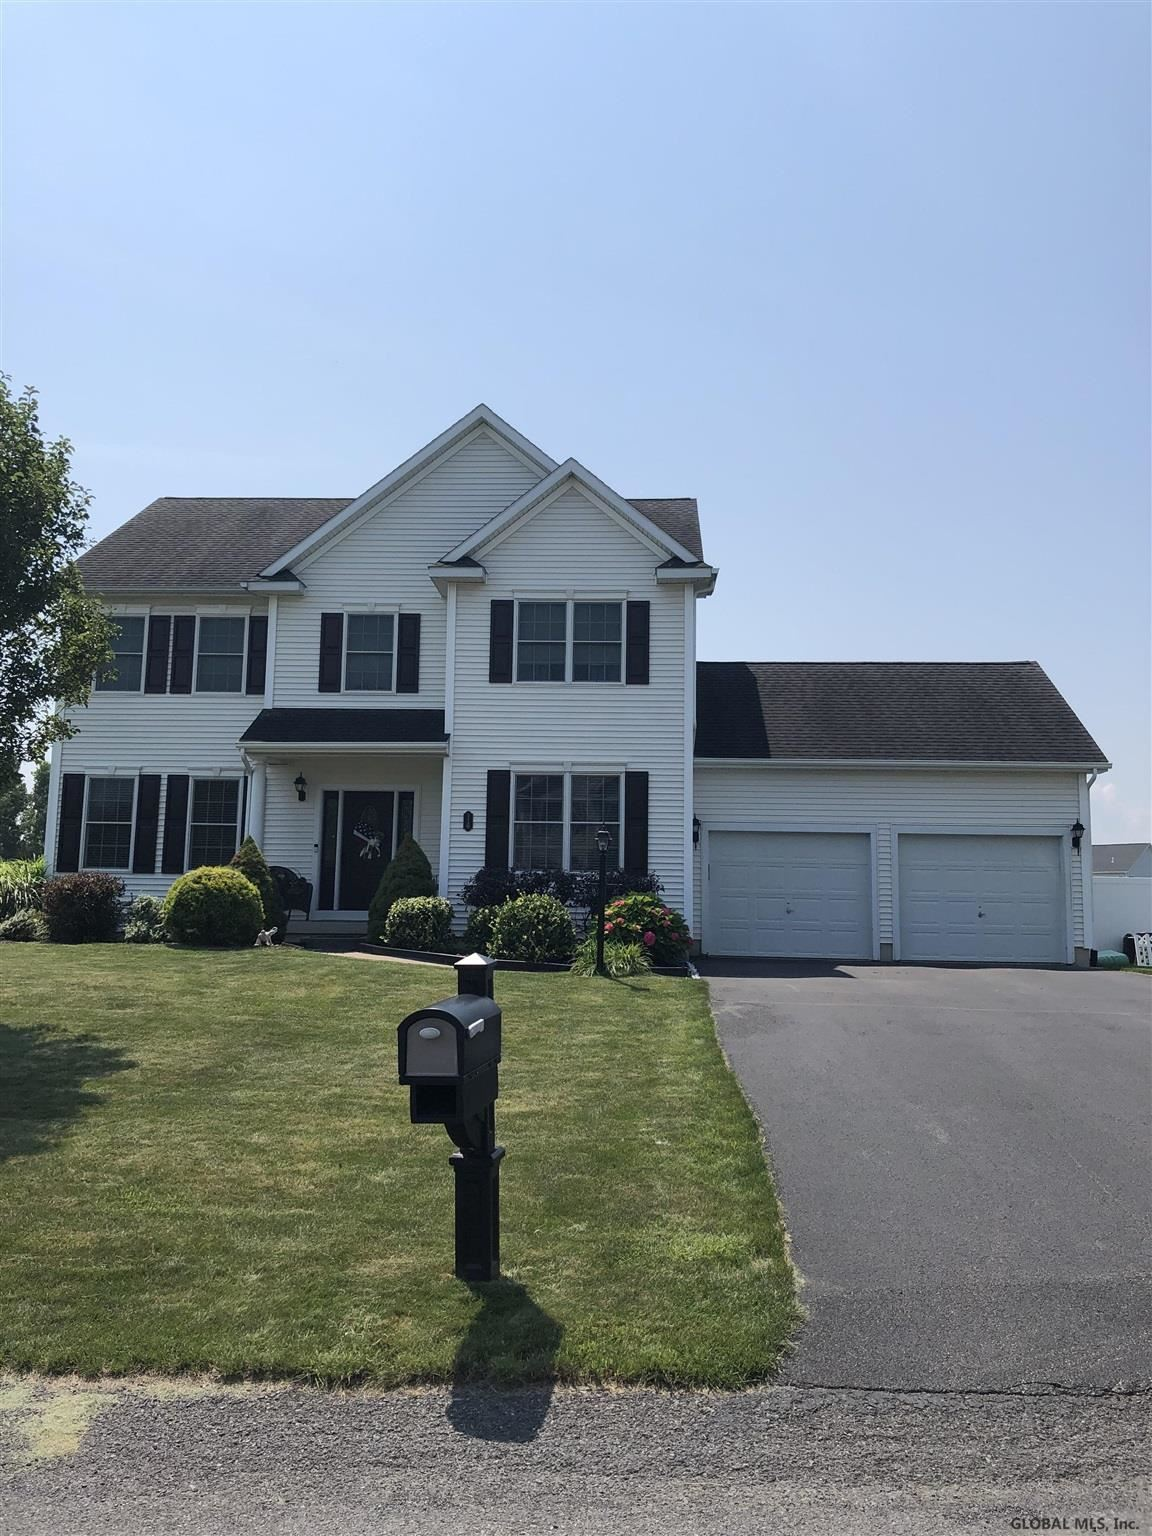 14 CHARTERPOINT RD, Watervliet, NY 12189 - #: 202124688